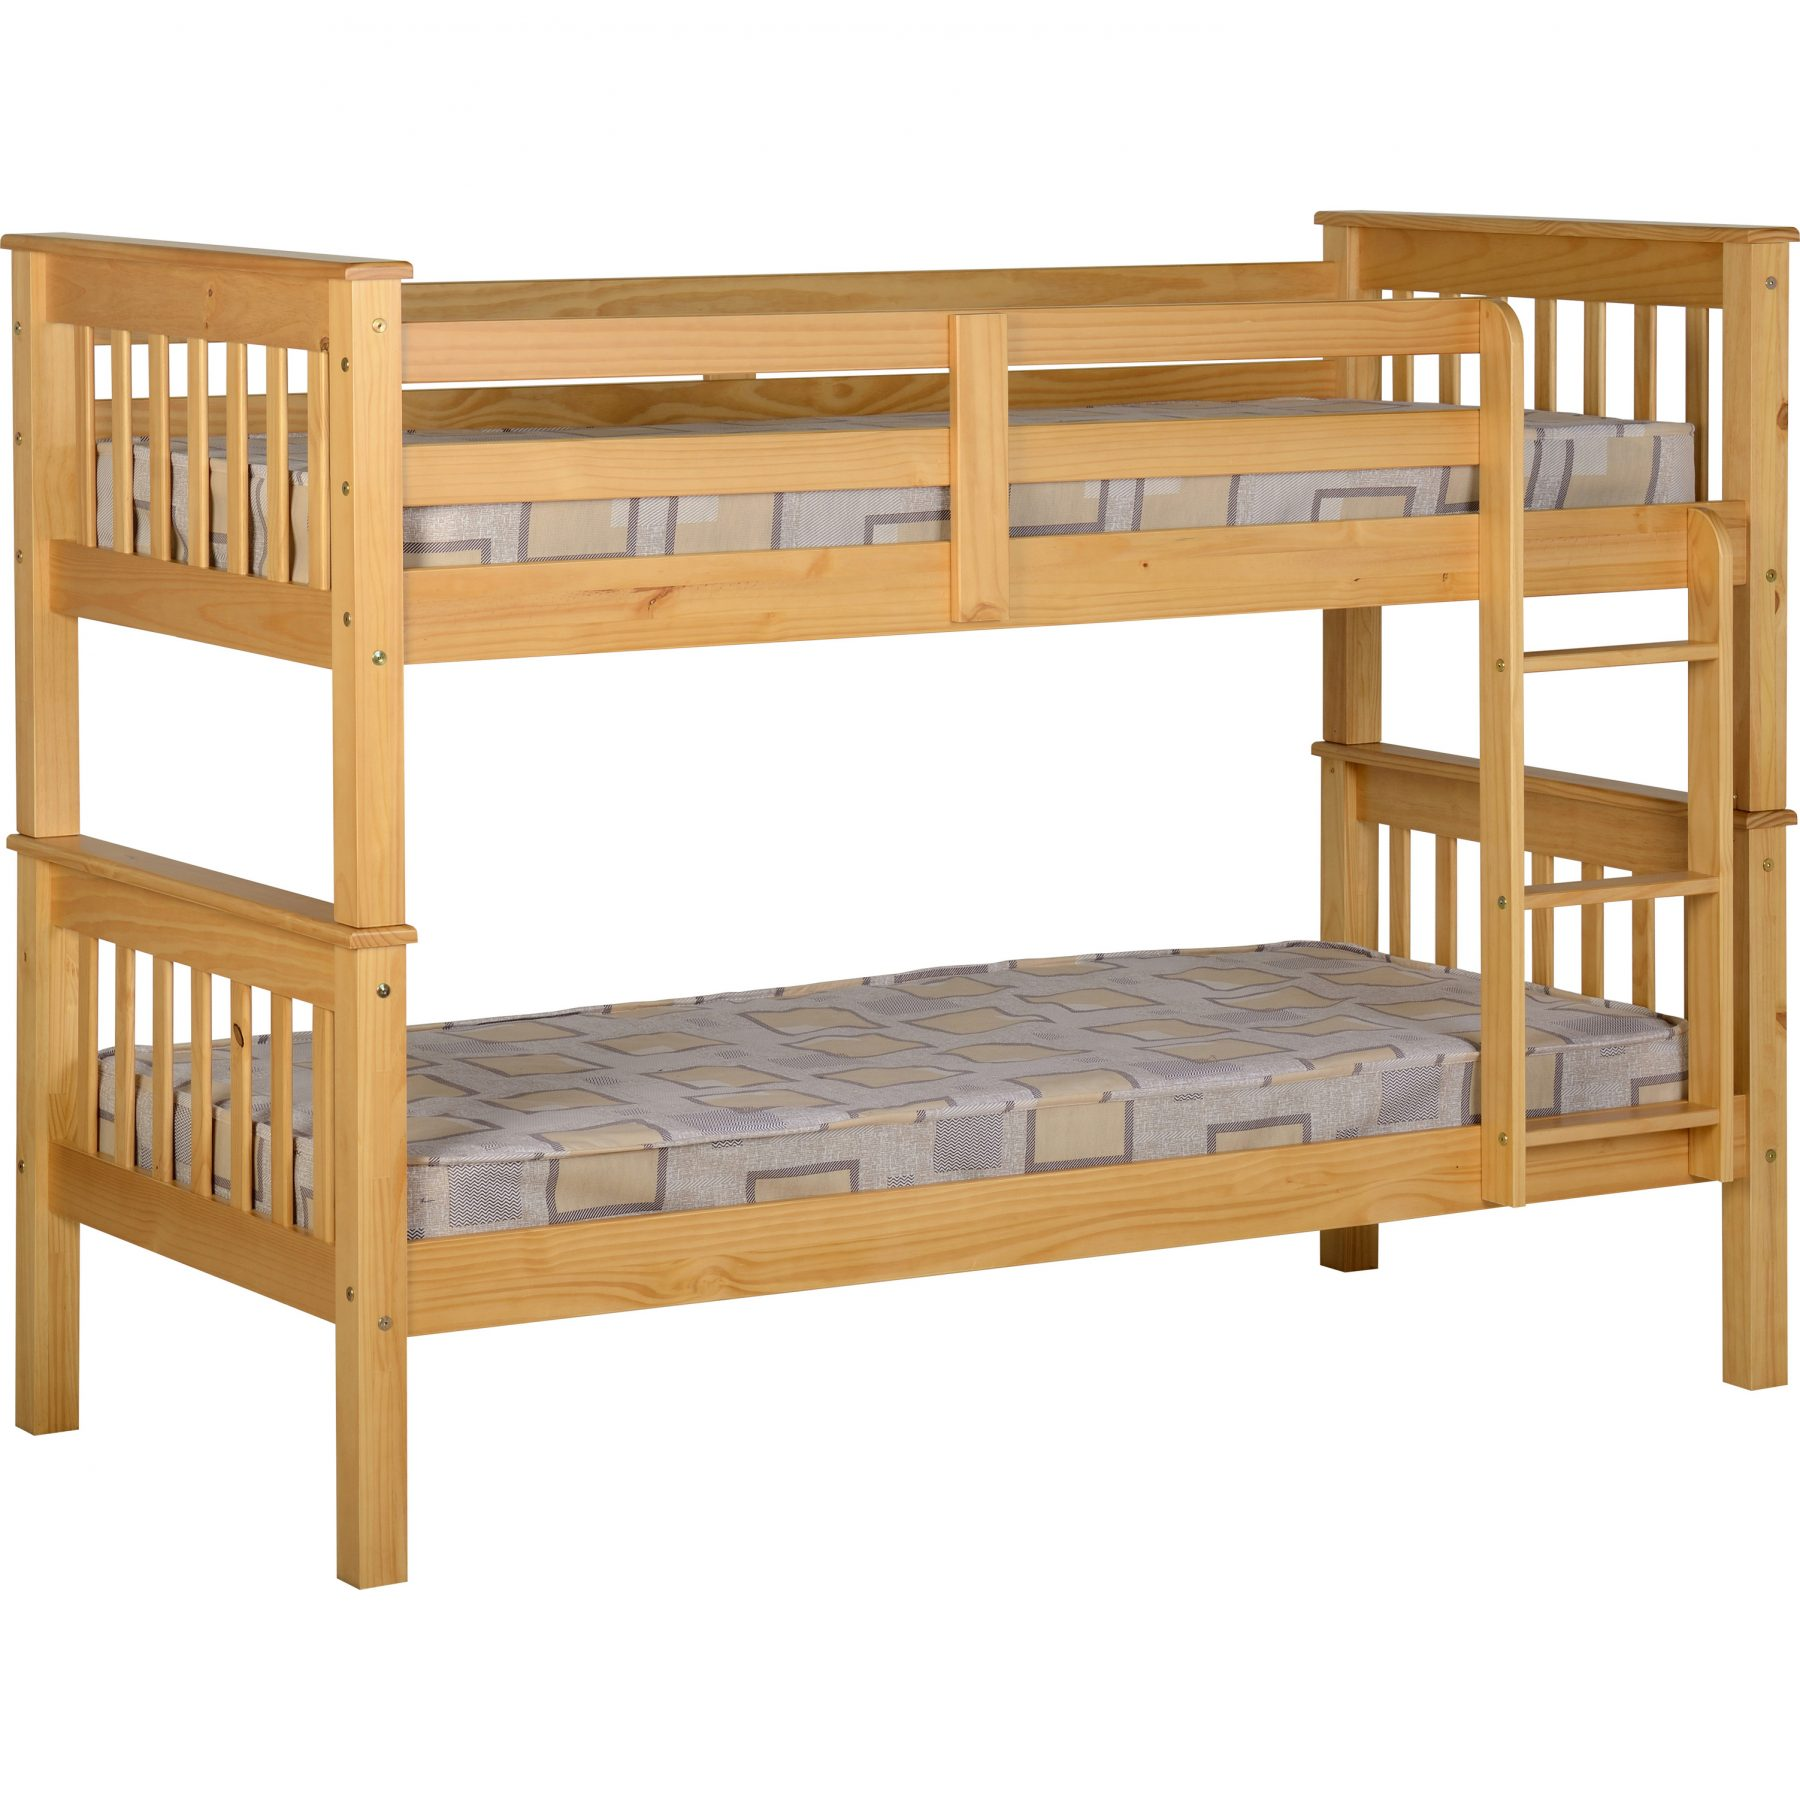 Neptune wooden bunk bed 3' Single